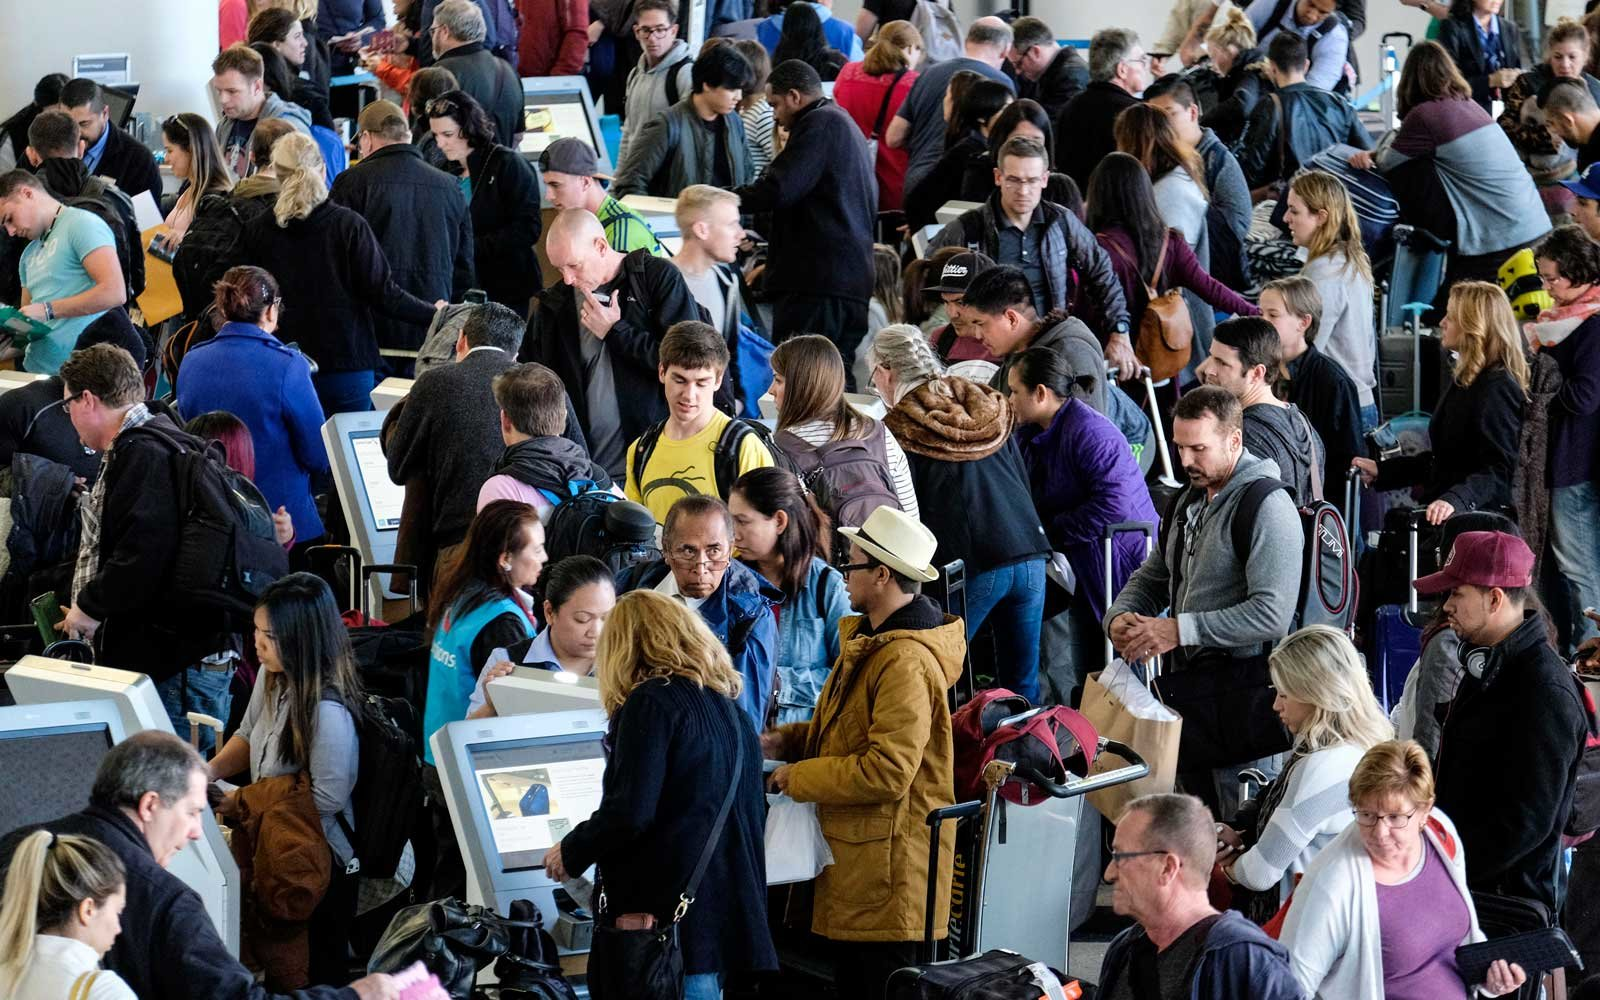 Airline passenger complaints are up